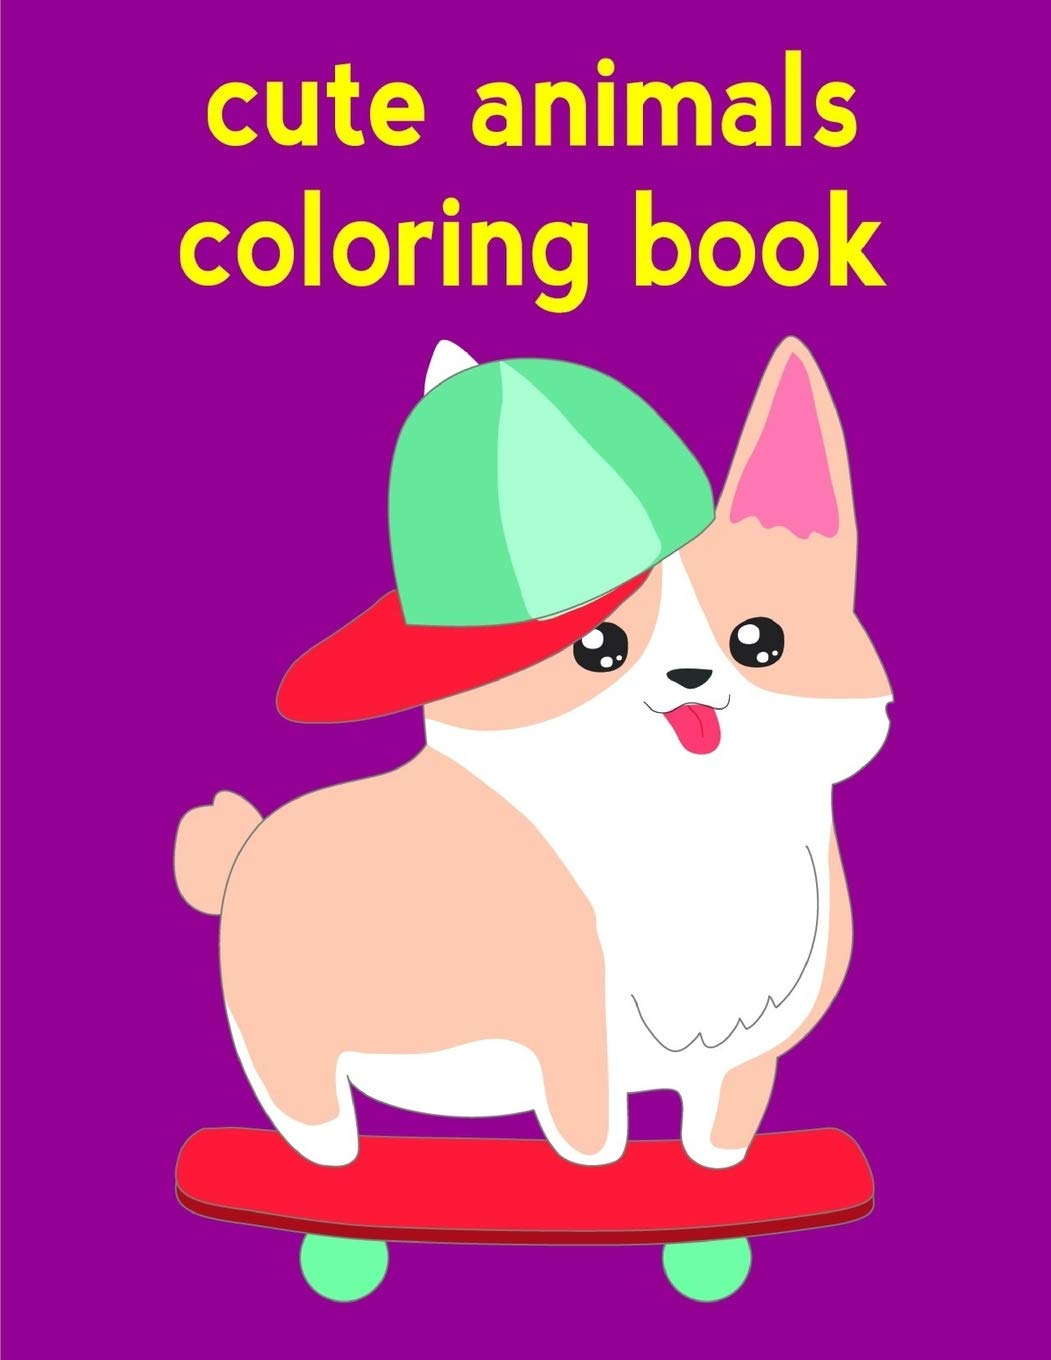 Amazon Com Cute Animals Coloring Book Coloring Pages With Funny Easy Learning And Relax Pictures For Animal Lovers Animal Planet 9781674015682 Color Advanced Books